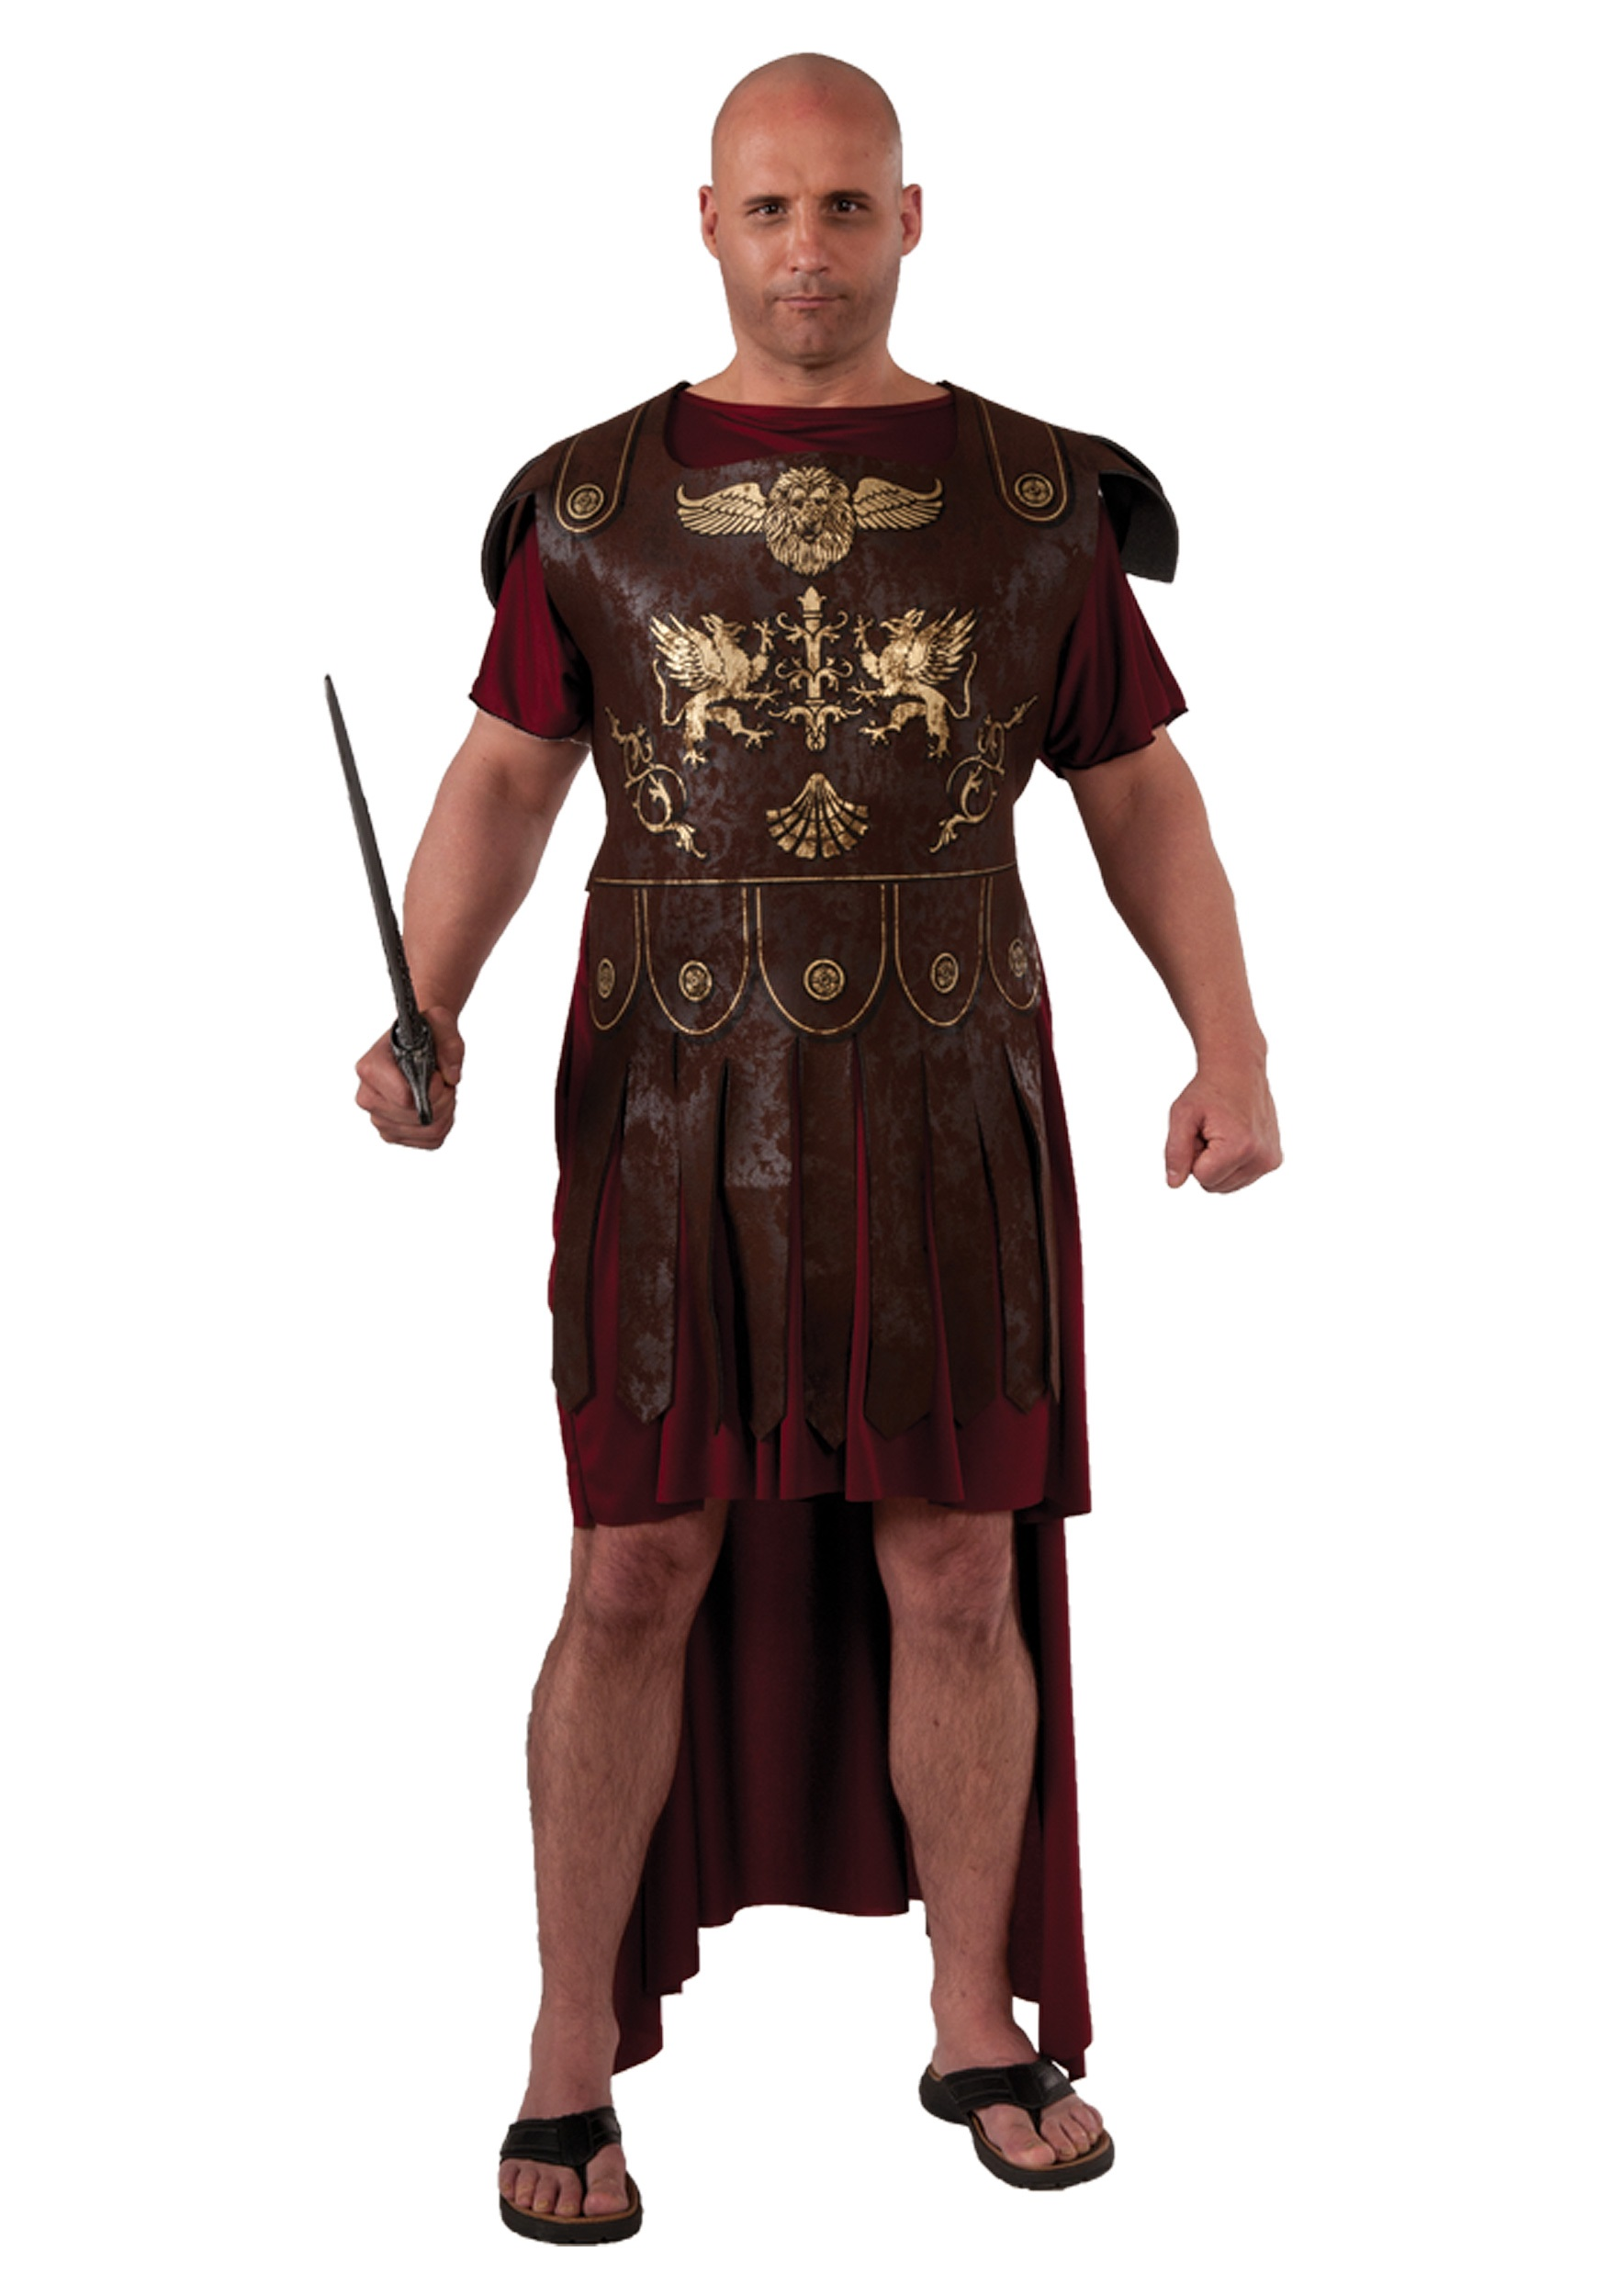 Gladiator Costumes for Men  sc 1 st  Costumes FC & Gladiator Costumes | Costumes FC